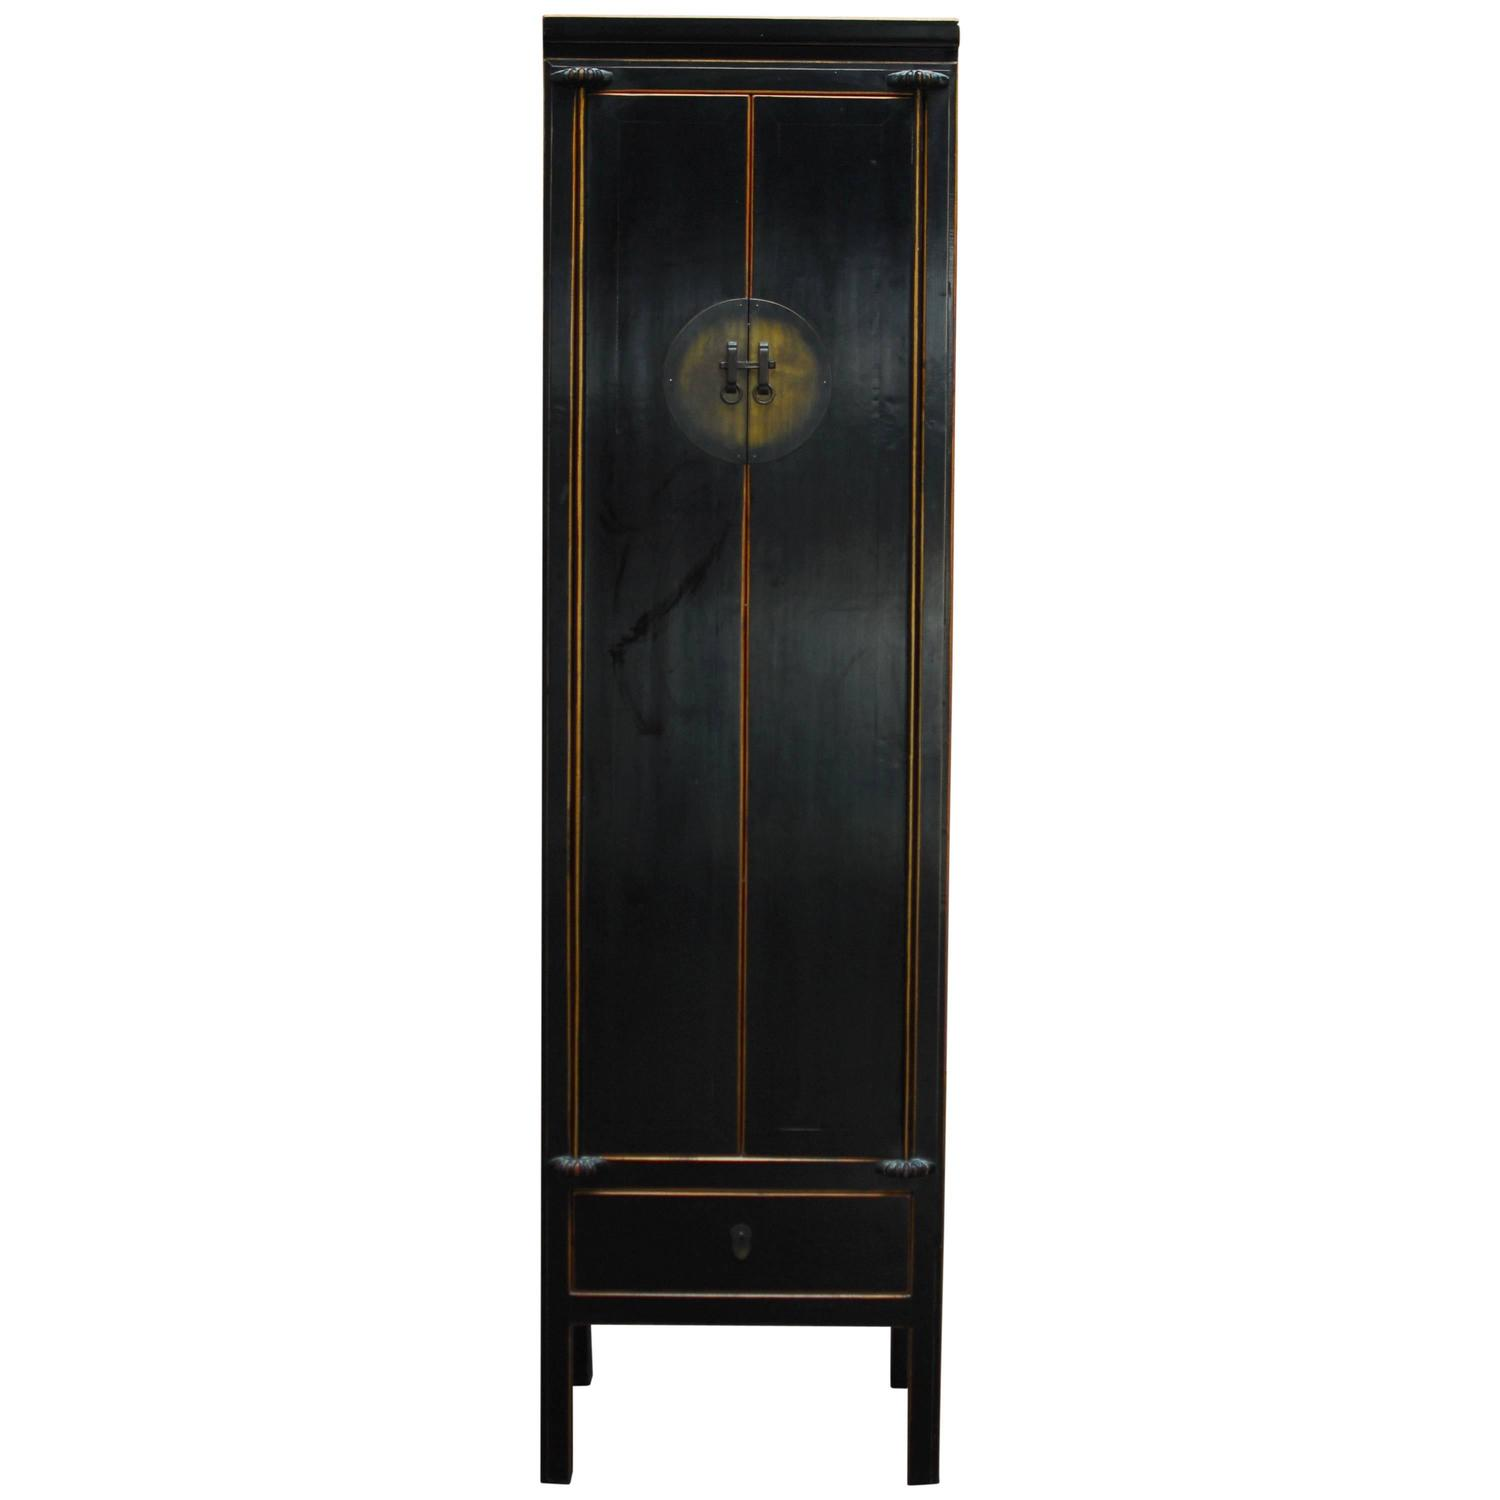 Chinese Tall Black Lacquer Cabinet For Sale at 1stdibs